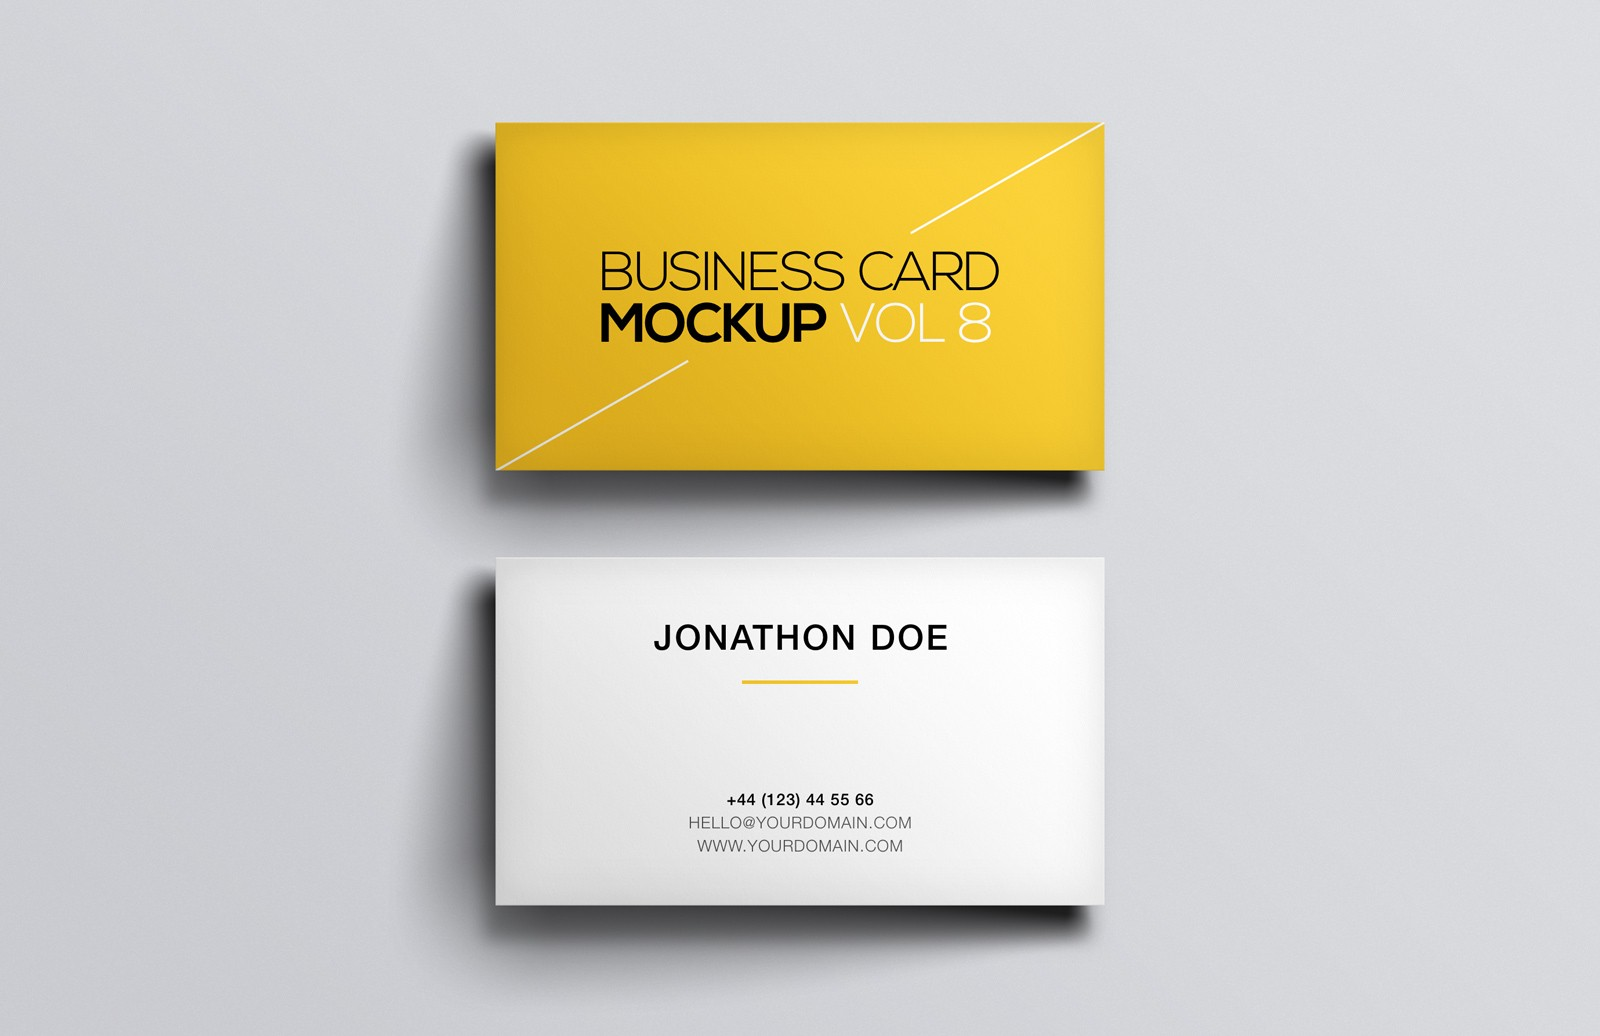 Business card mockup vol 8 medialoot business card mockup vol 8 preview 1 colourmoves